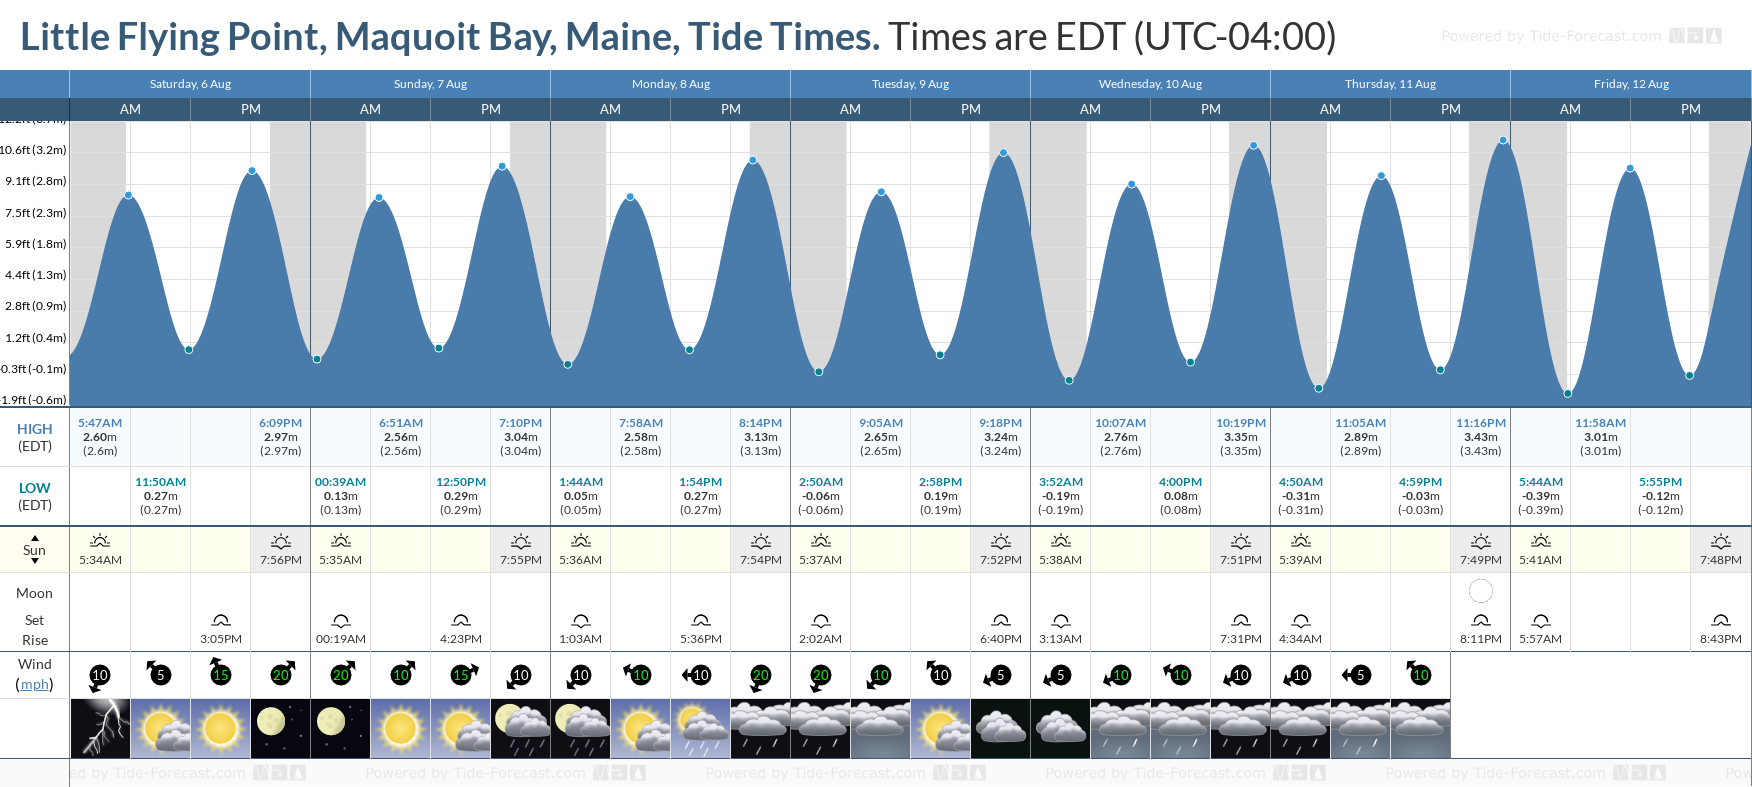 Little Flying Point, Maquoit Bay, Maine Tide Chart including high and low tide tide times for the next 7 days